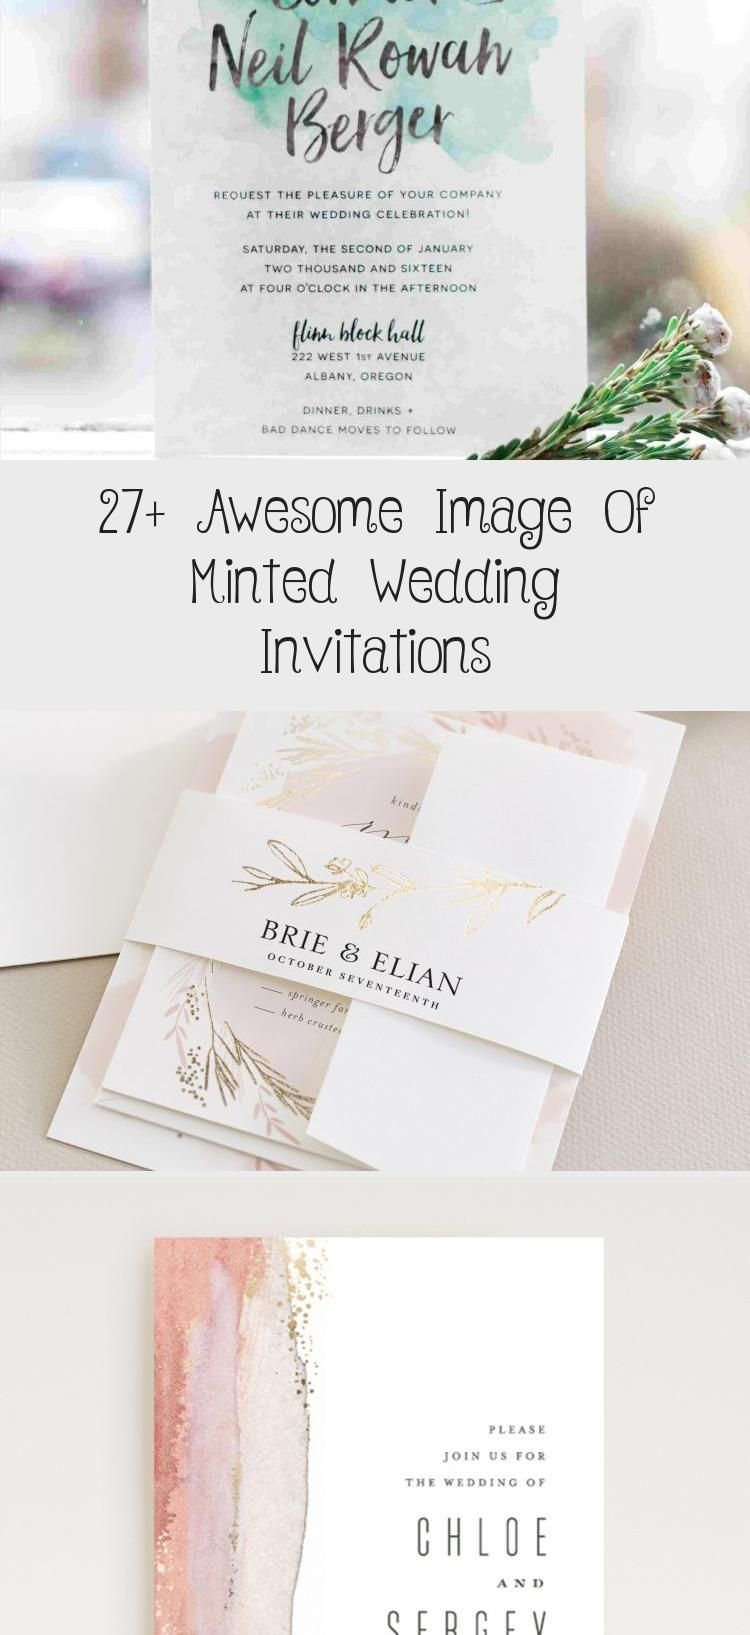 27 Awesome Image Of Minted Wedding Invitations Wedding 27 Awesome Image Of Minted In 2020 Wedding Invitations Minted Wedding Invitations Coral Wedding Invitations